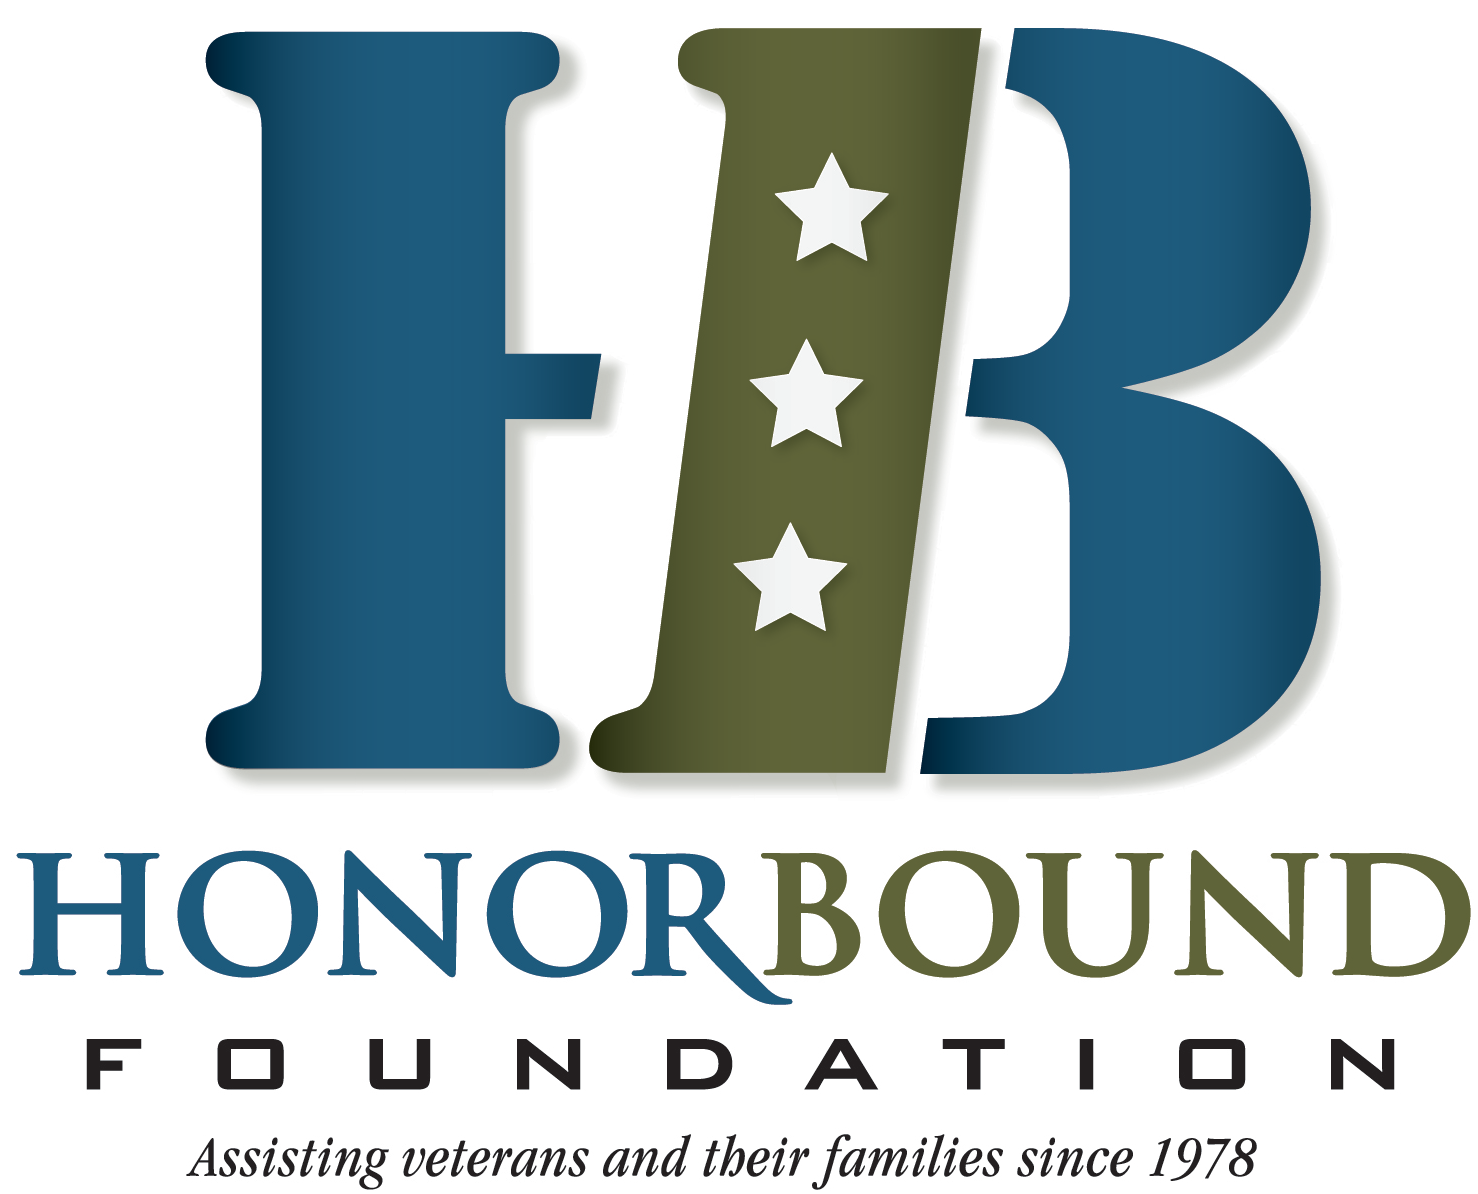 New York Car Donations - HonorBound Foundation - DonatecarUSA.com